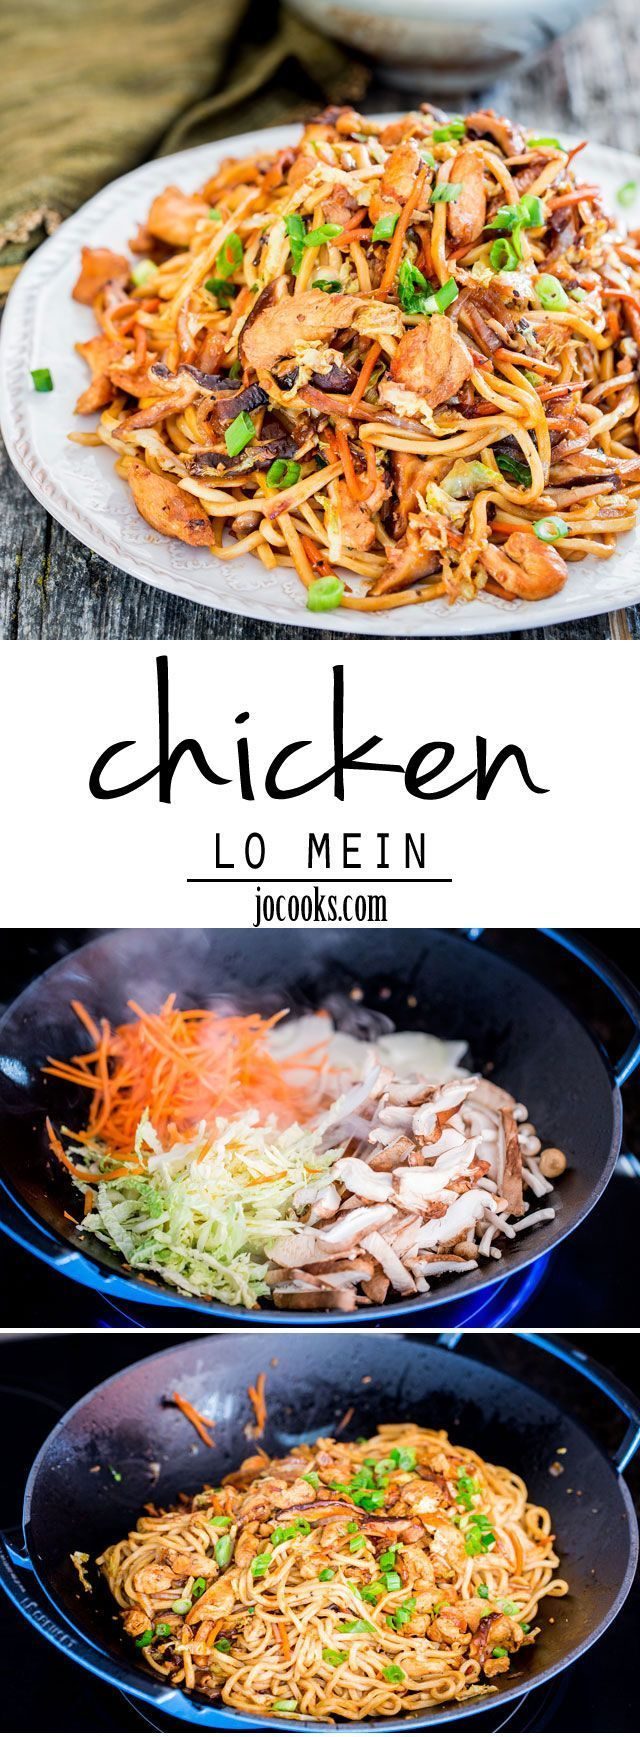 Chicken Lo Mein - get stir-frying with the easiest and most scrumptious chicken lo mein recipe. Forget take-out, whip this up at home! #seafoodrecipes